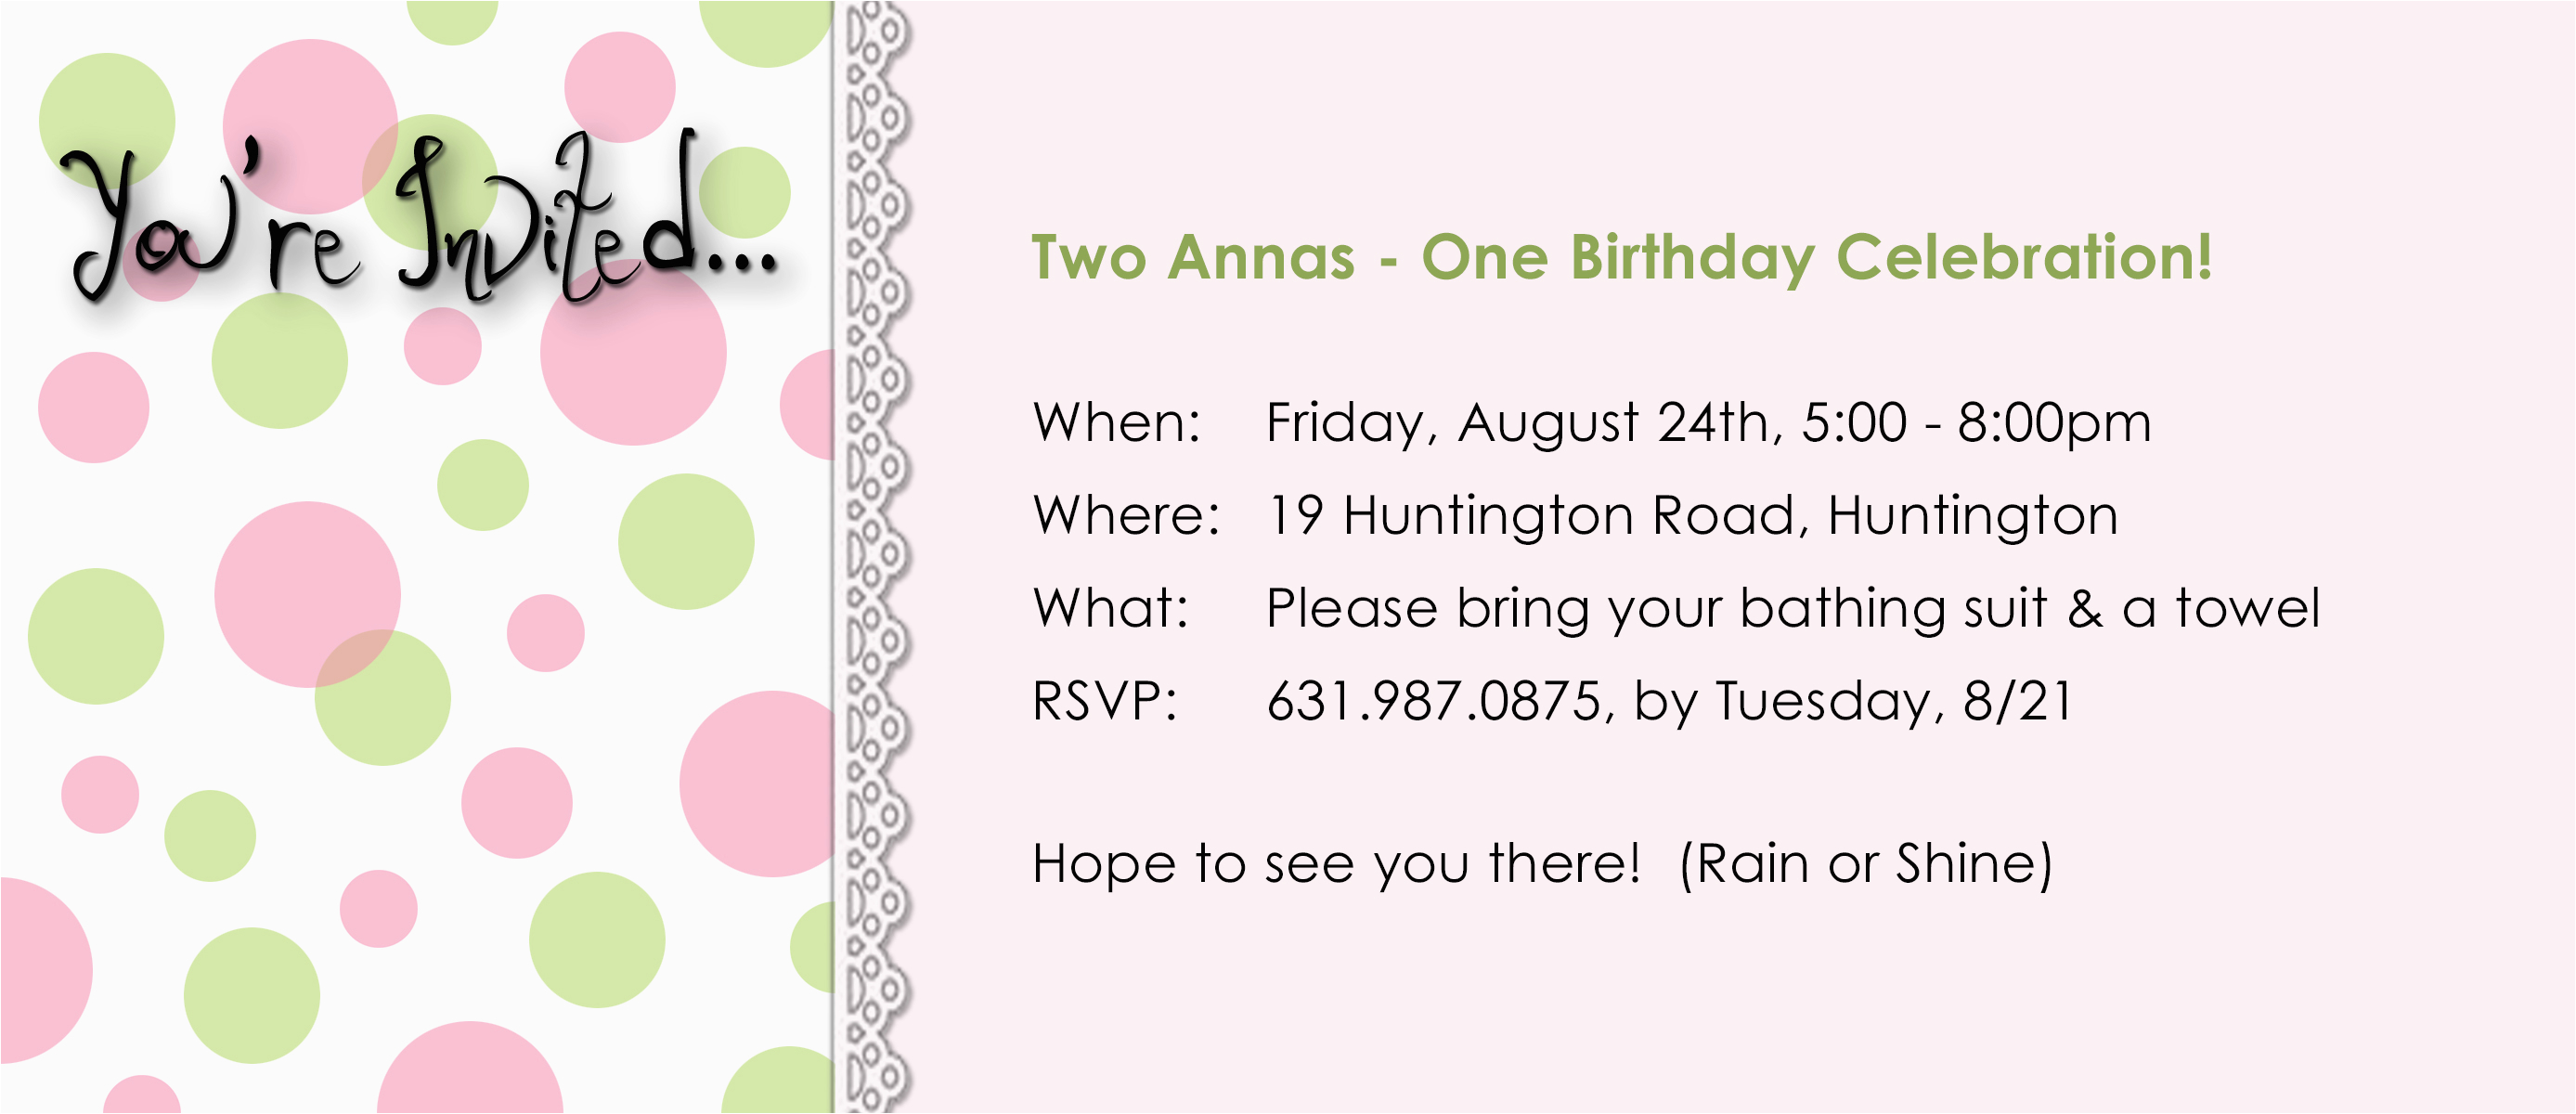 How To Invite Birthday Party Invitation Email 7 Impressive Party